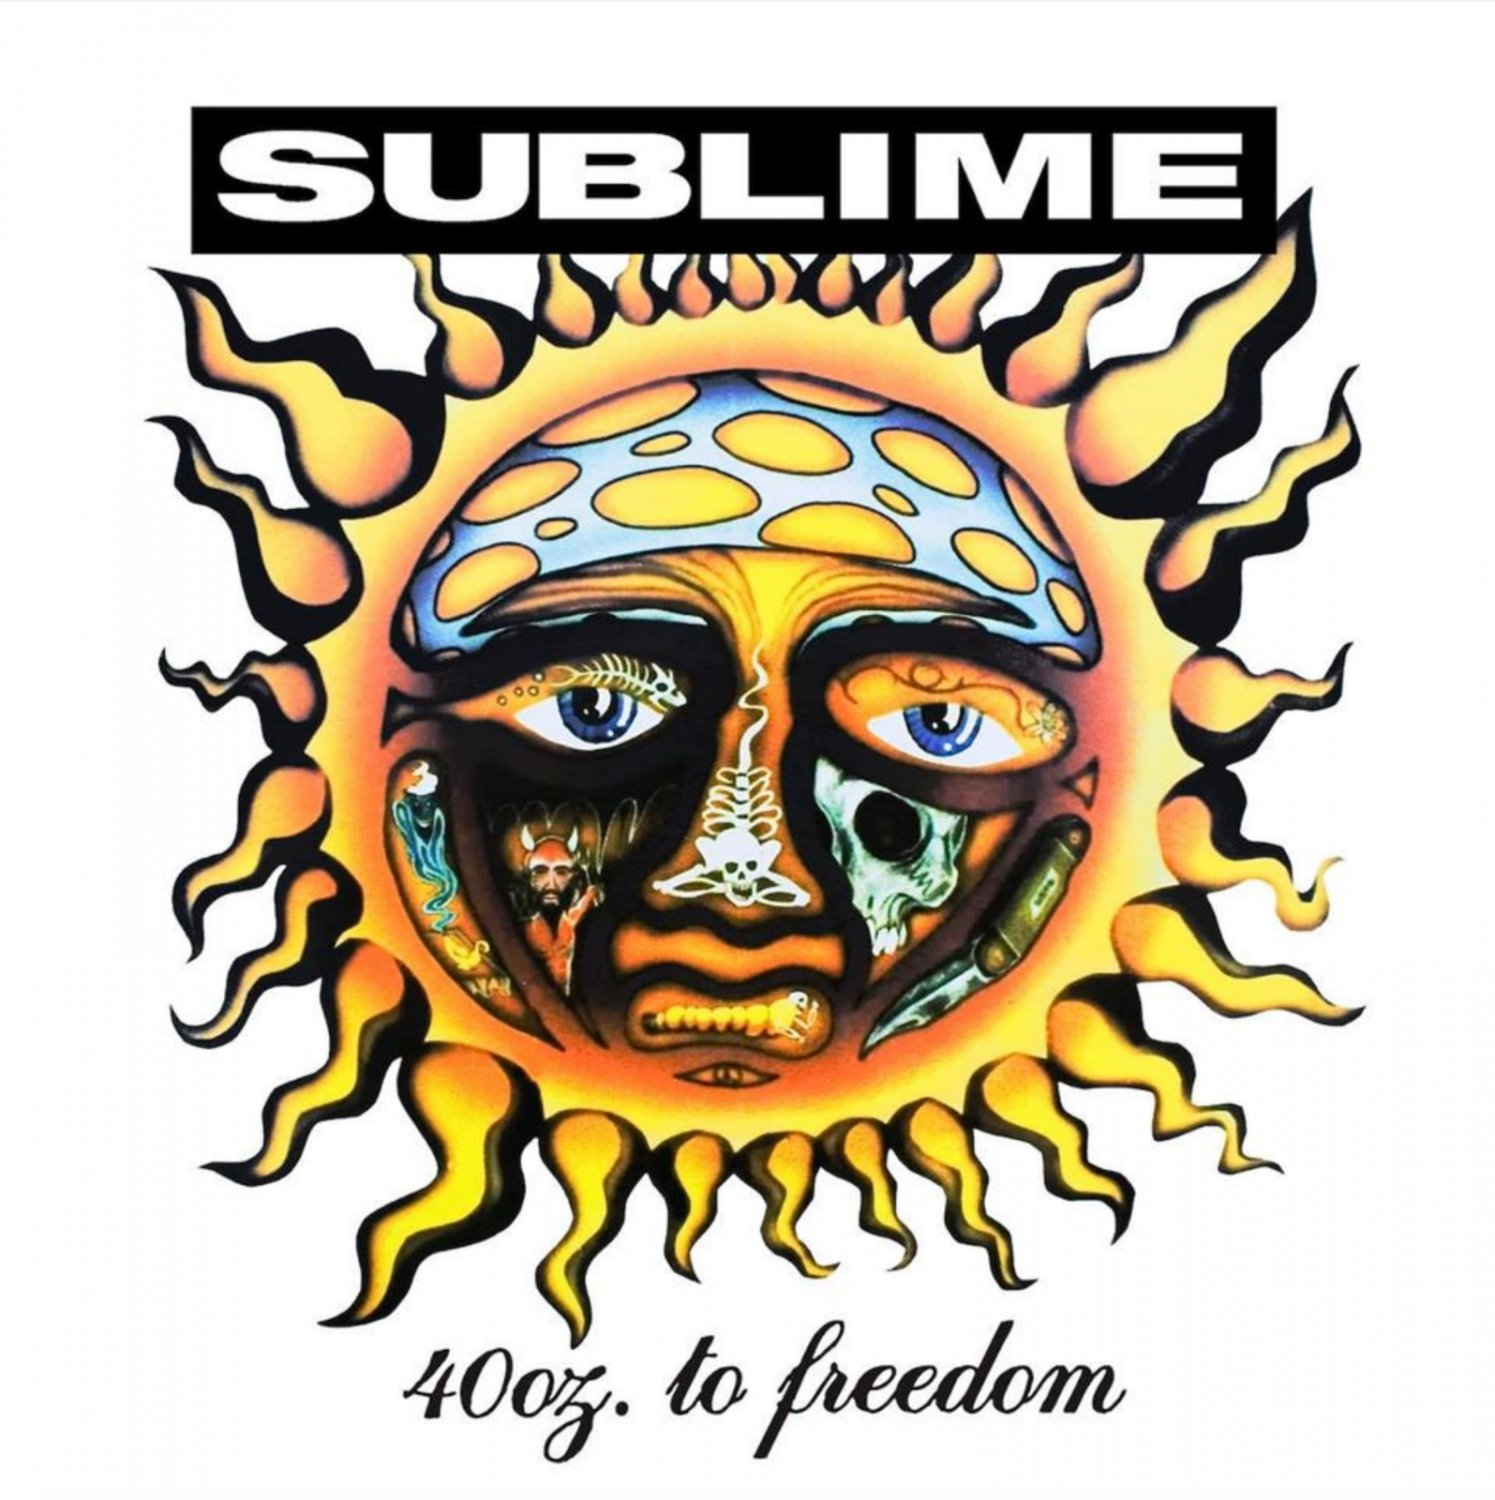 SUBLIME 40 oz to Freedom BANNER Huge 4X4 Ft Fabric Poster Tapestry Flag Print album cover art